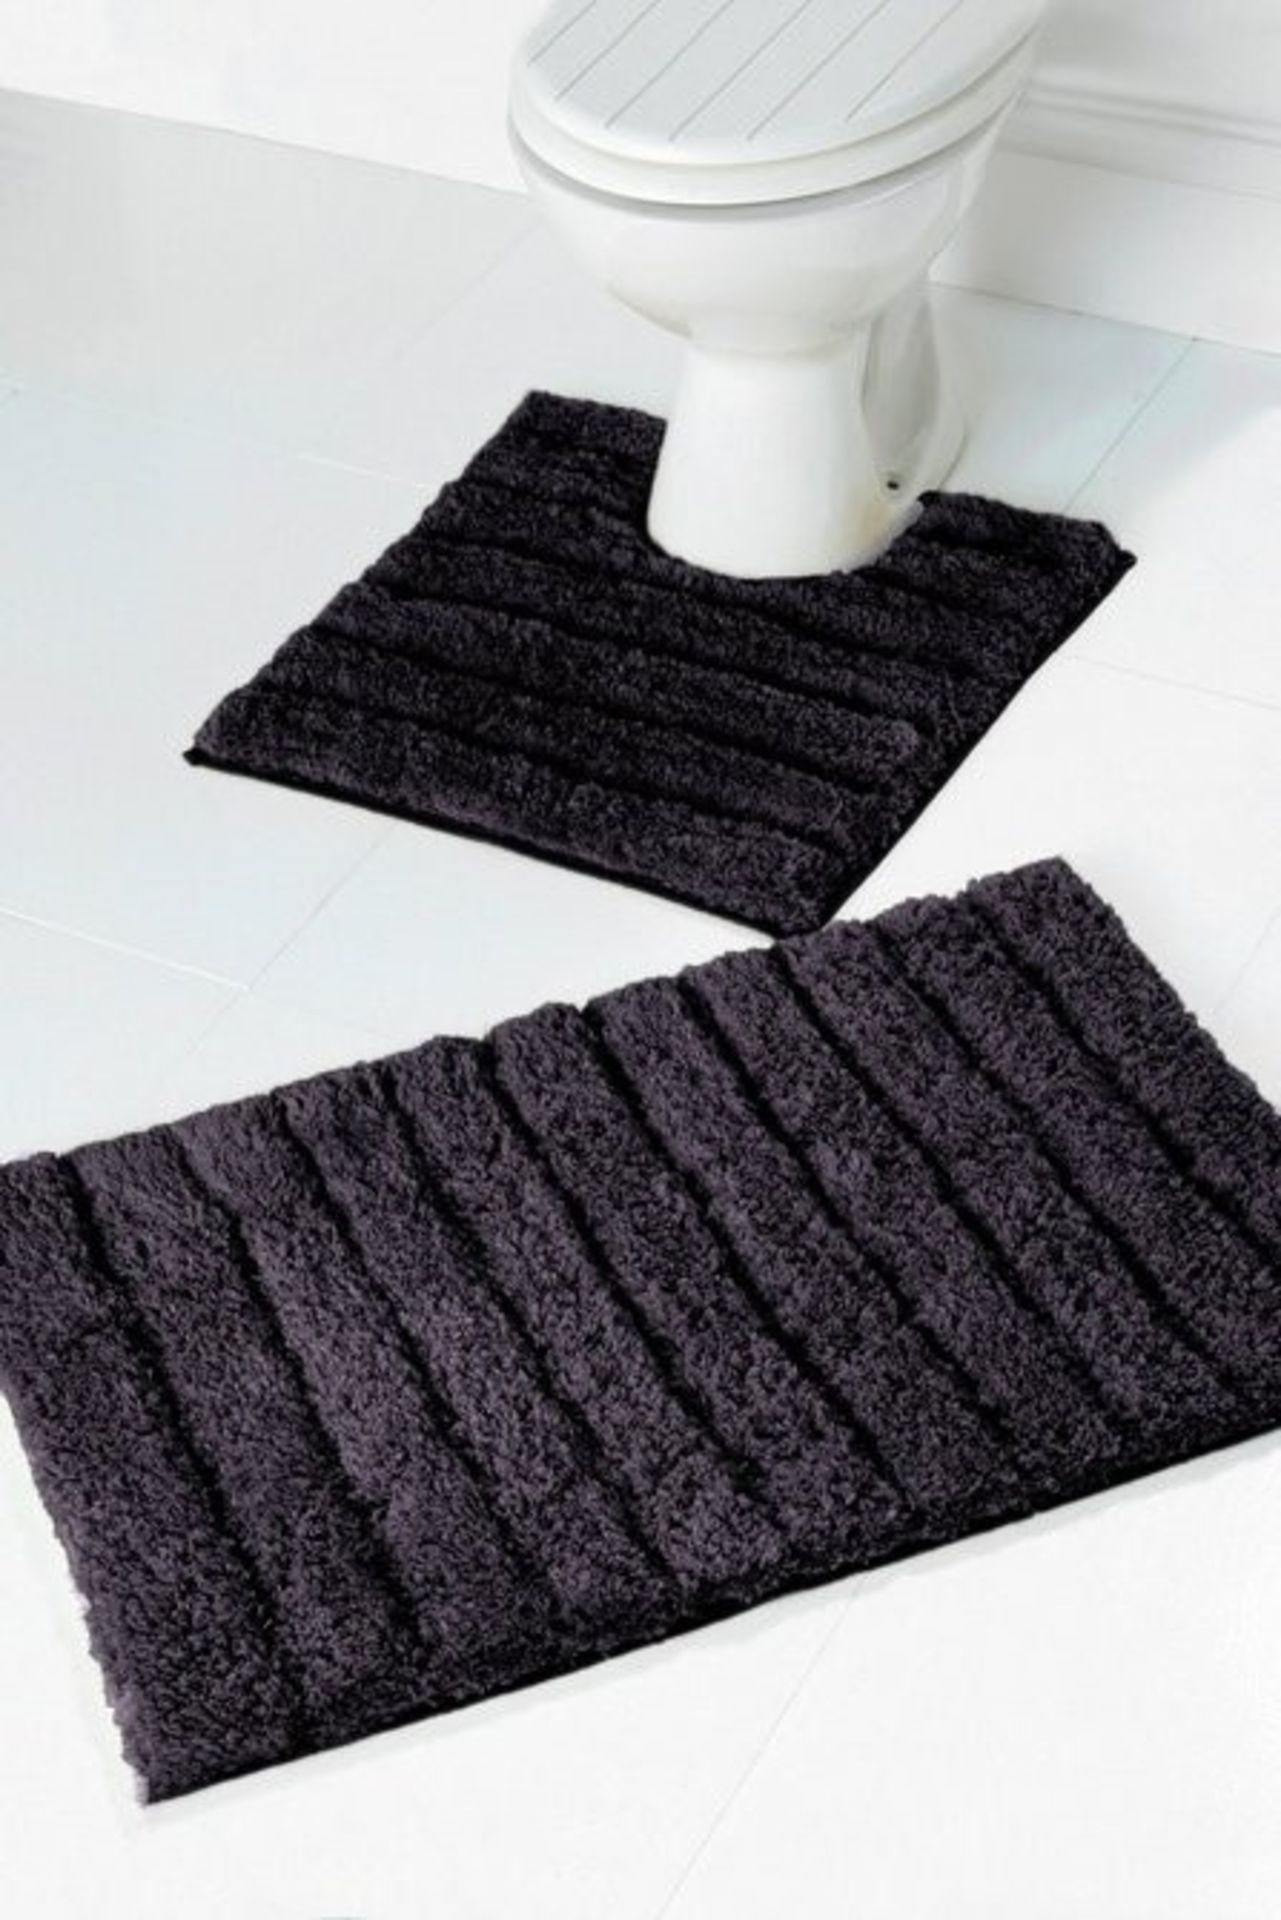 Lot 93 - 1 BAGGED SUPERSOFT SPARKLING BATH MAT SET IN CHARCOAL (PUBLIC VIEWING AVAILABLE)